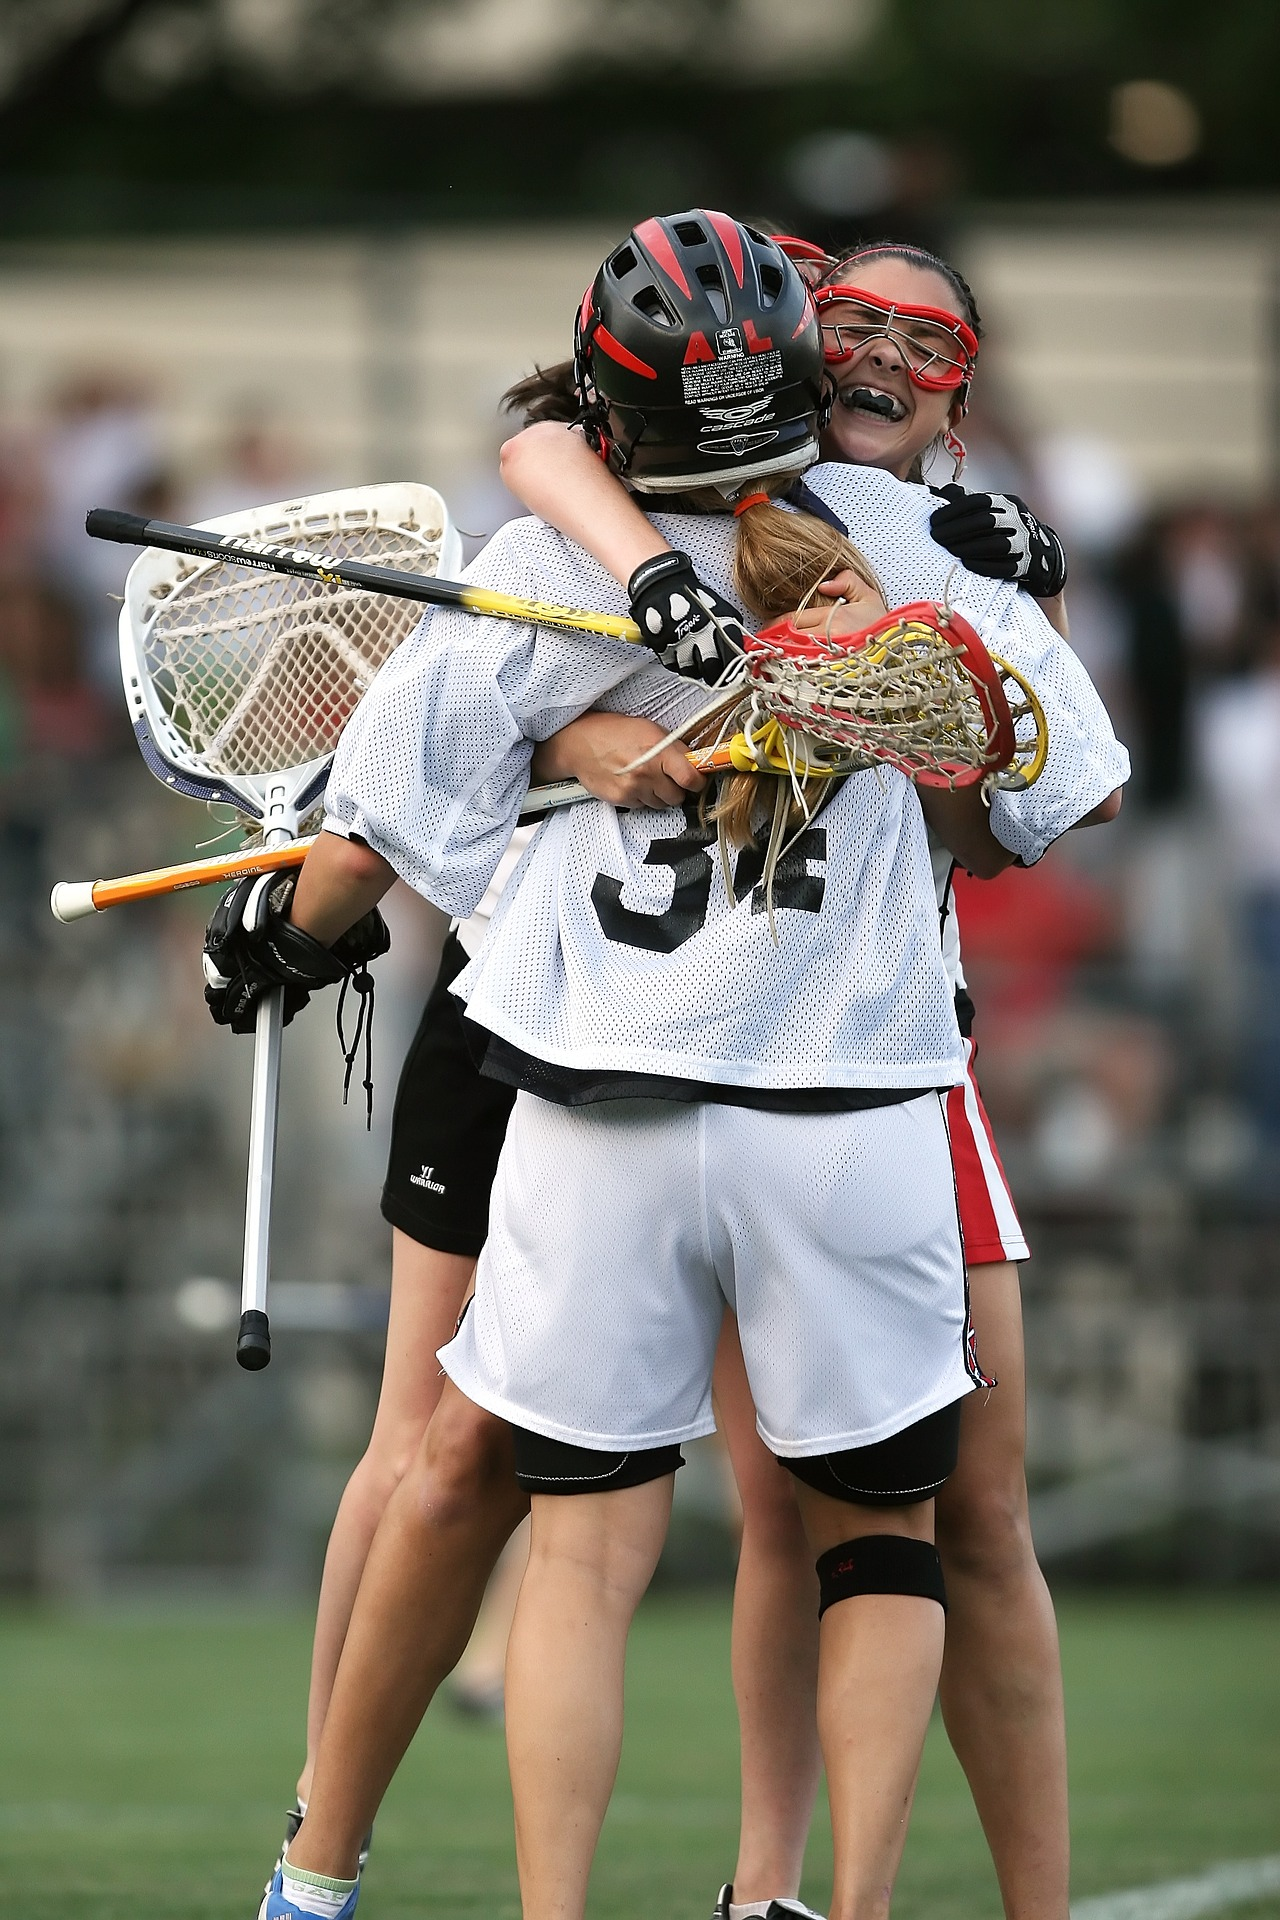 Girl Lacrosse Players celebrate on the field